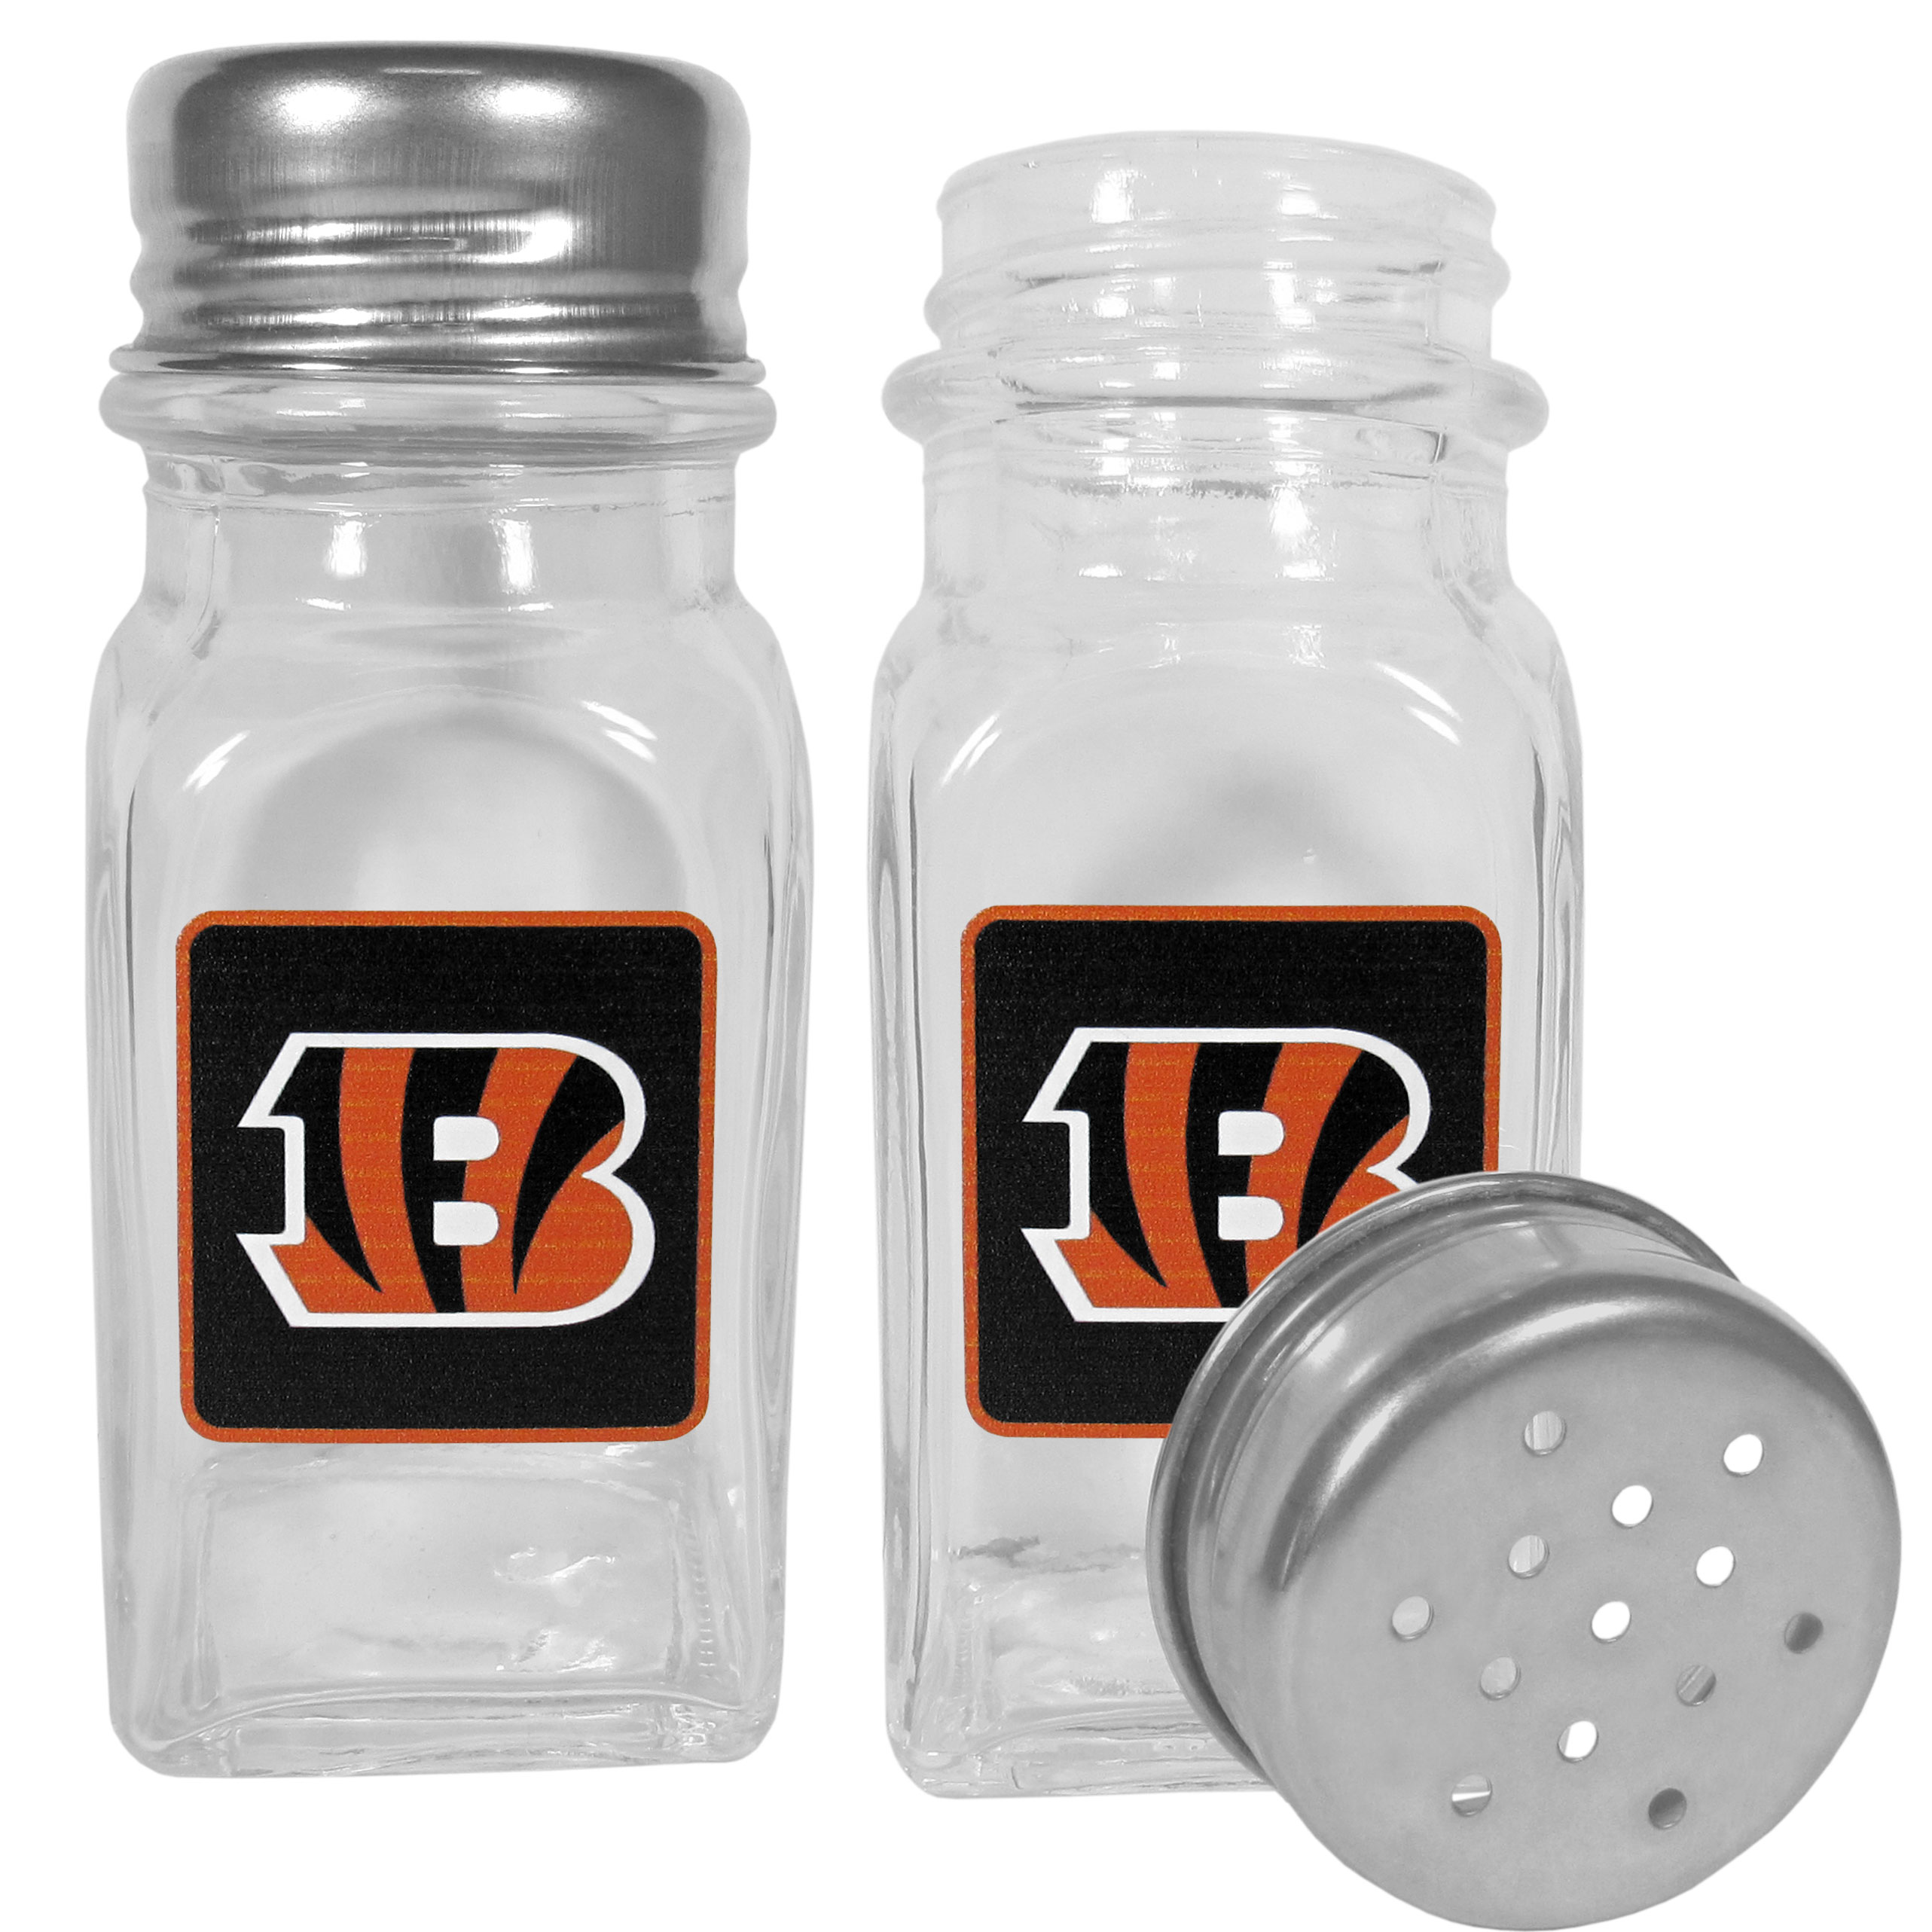 Cincinnati Bengals Graphics Salt and Pepper Shaker - No tailgate party is complete without your Cincinnati Bengals salt & pepper shakers featuring bright team logos. The diner replica salt and pepper shakers are glass with screw top lids. These team shakers are a great grill accessory whether you are barbecuing on the patio, picnicing or having a game day party.